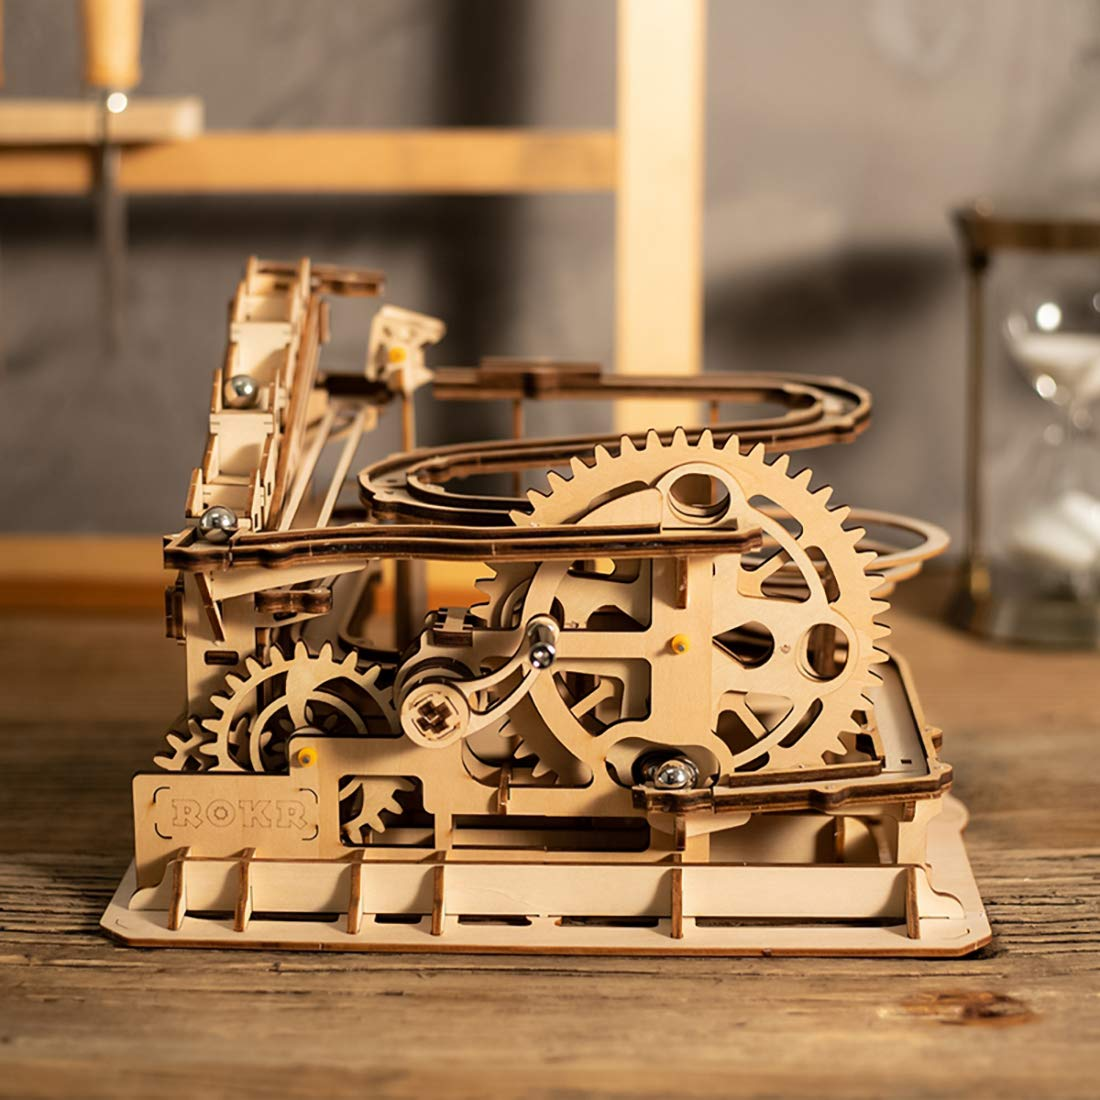 ROKR Marble Run Waterwheel Coaster 3D Puzzle 2